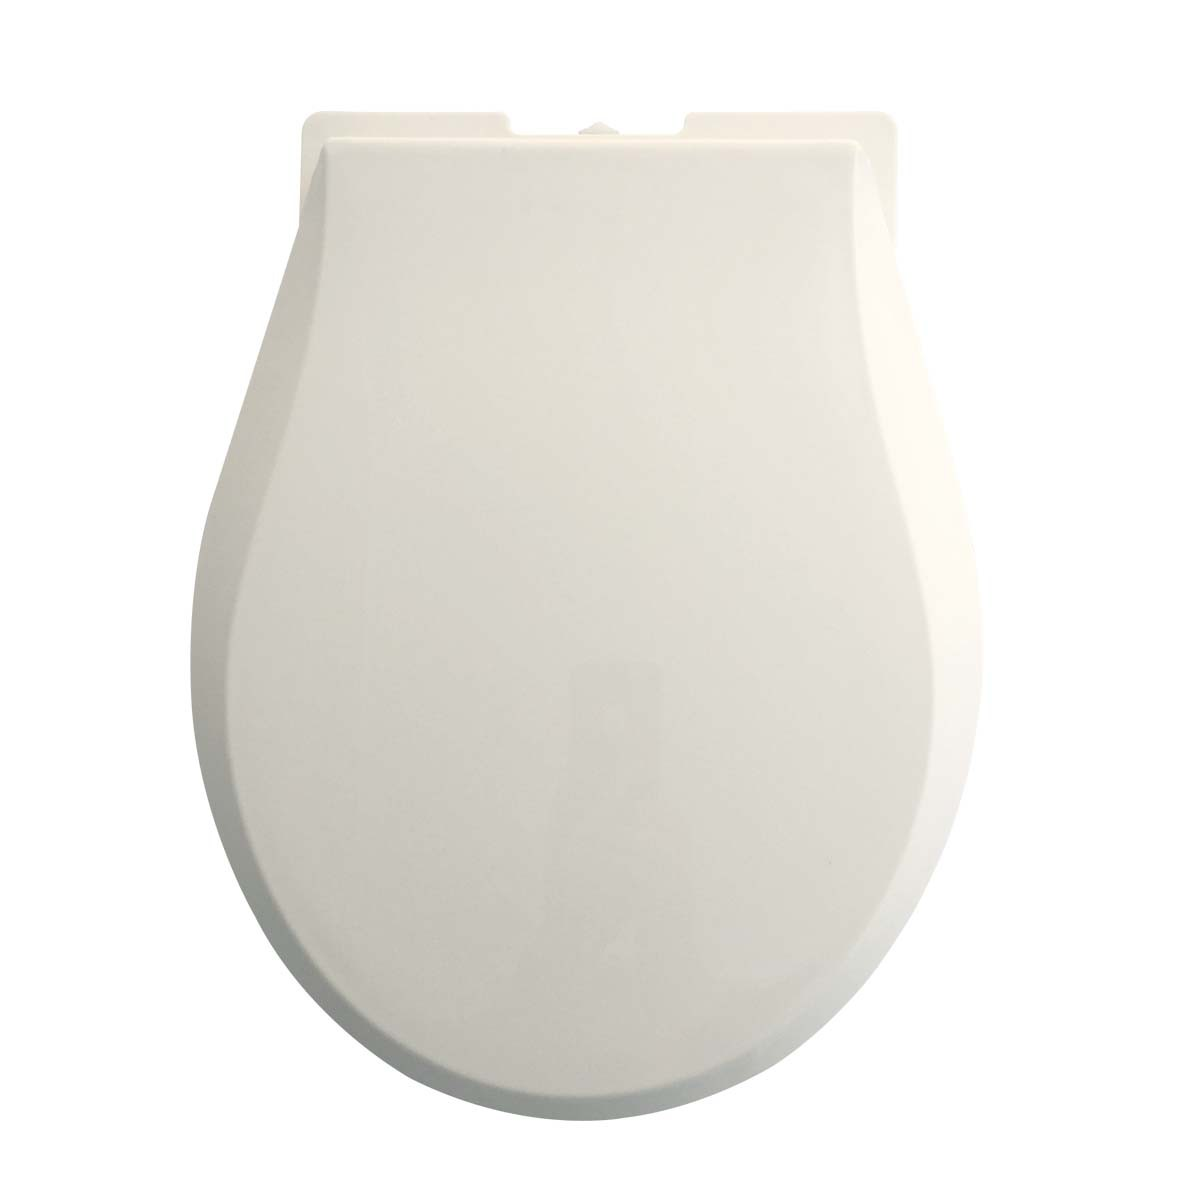 Slow Down Toilet Seat For Children Toilet Kids Toilet Seat Kids Toilet Seat Toilet Seat Round Slow Close Toilet Seat